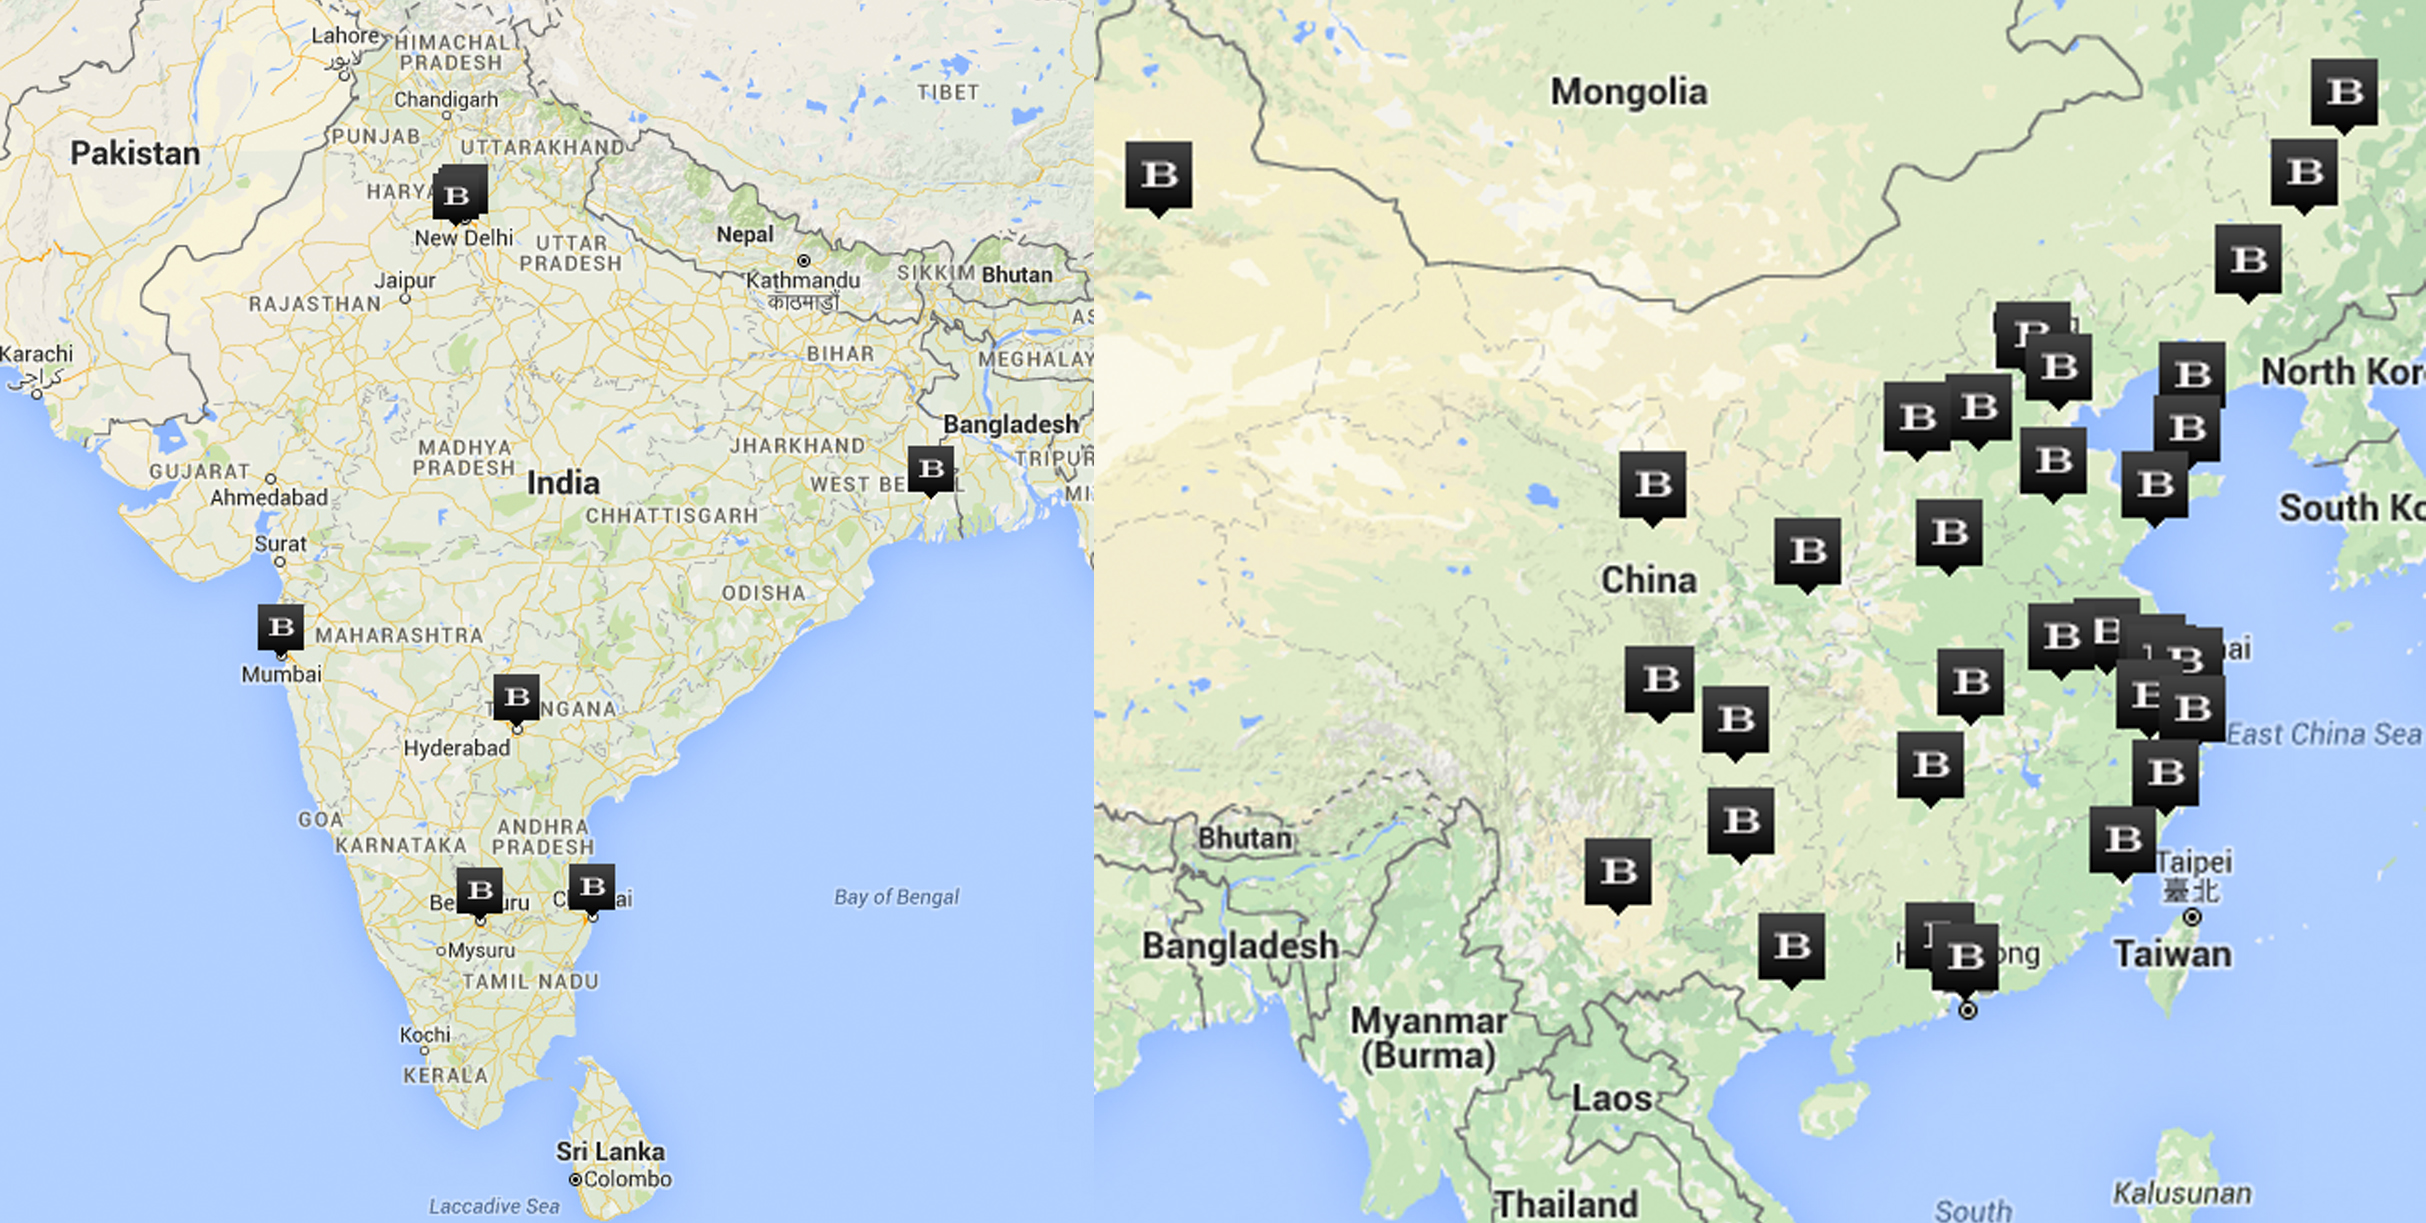 Left: Burberry stores in India, Right: Burberry stores in China. Taken from Burberry.com